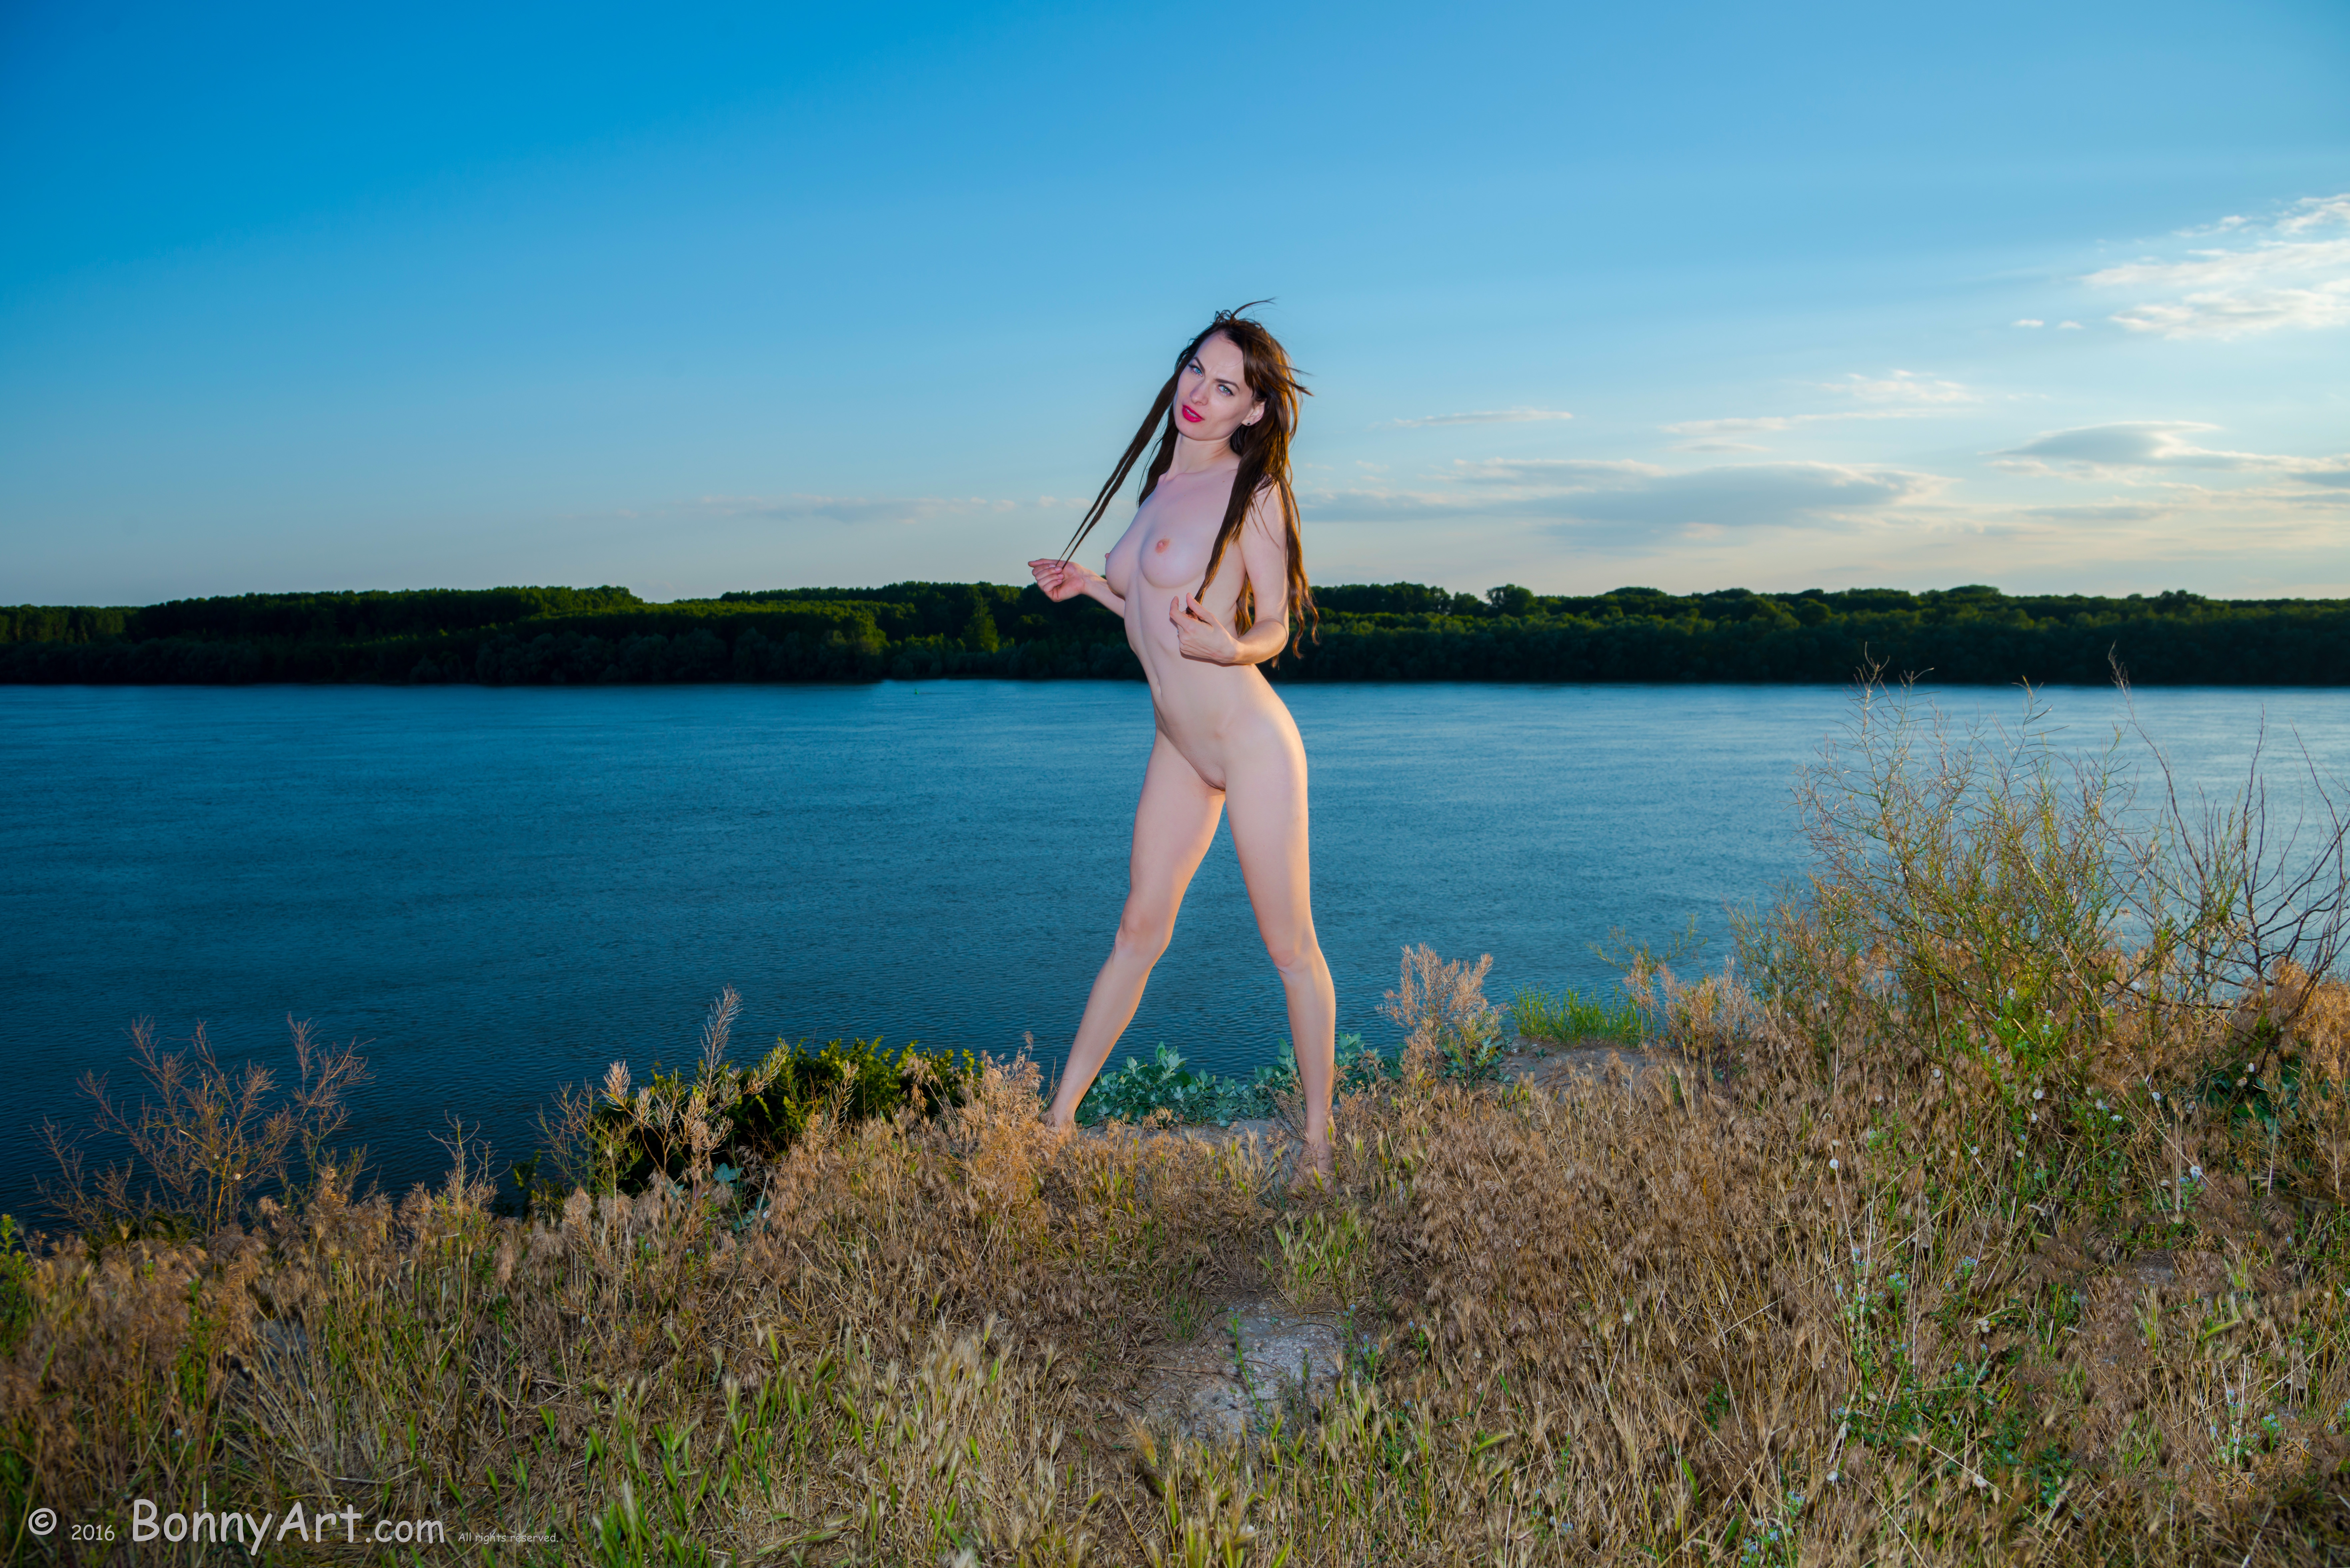 Naked Elf-Like Girl on the Tall Shore HD